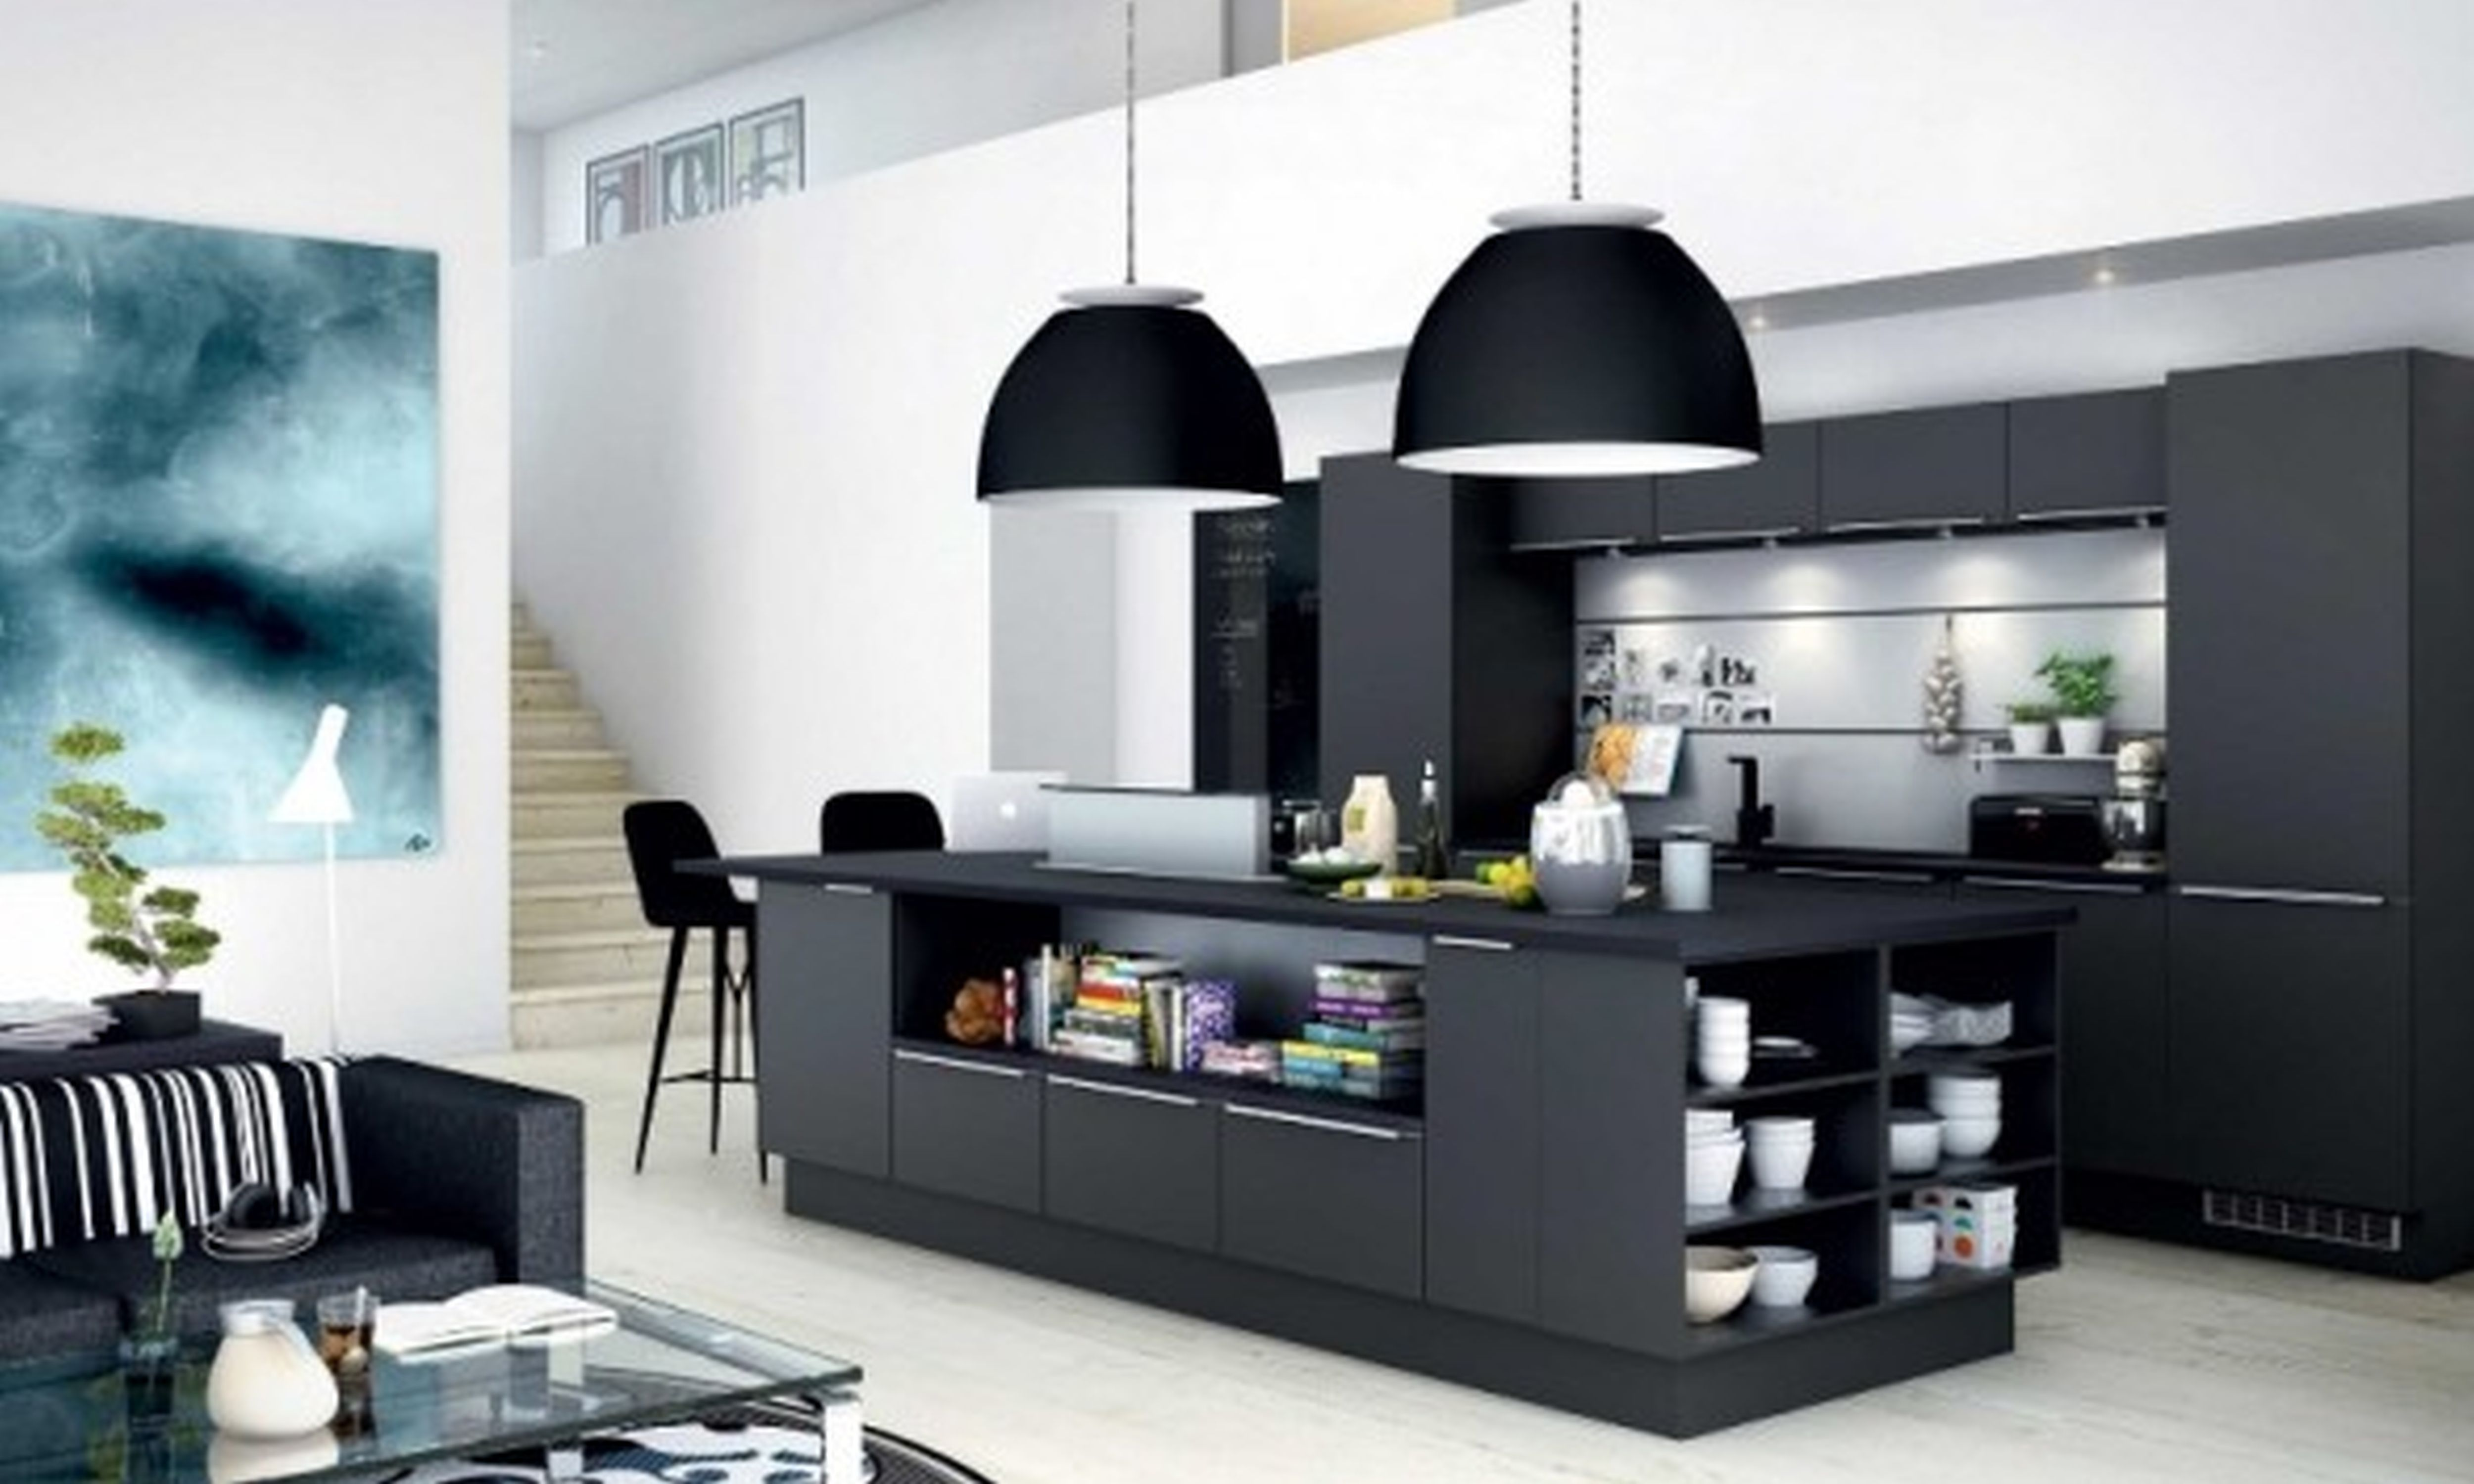 Great Captivating Open Floor Apartment Kitchen Design With Matte Black Kitchen  Cabinets And Island And Countertops Also